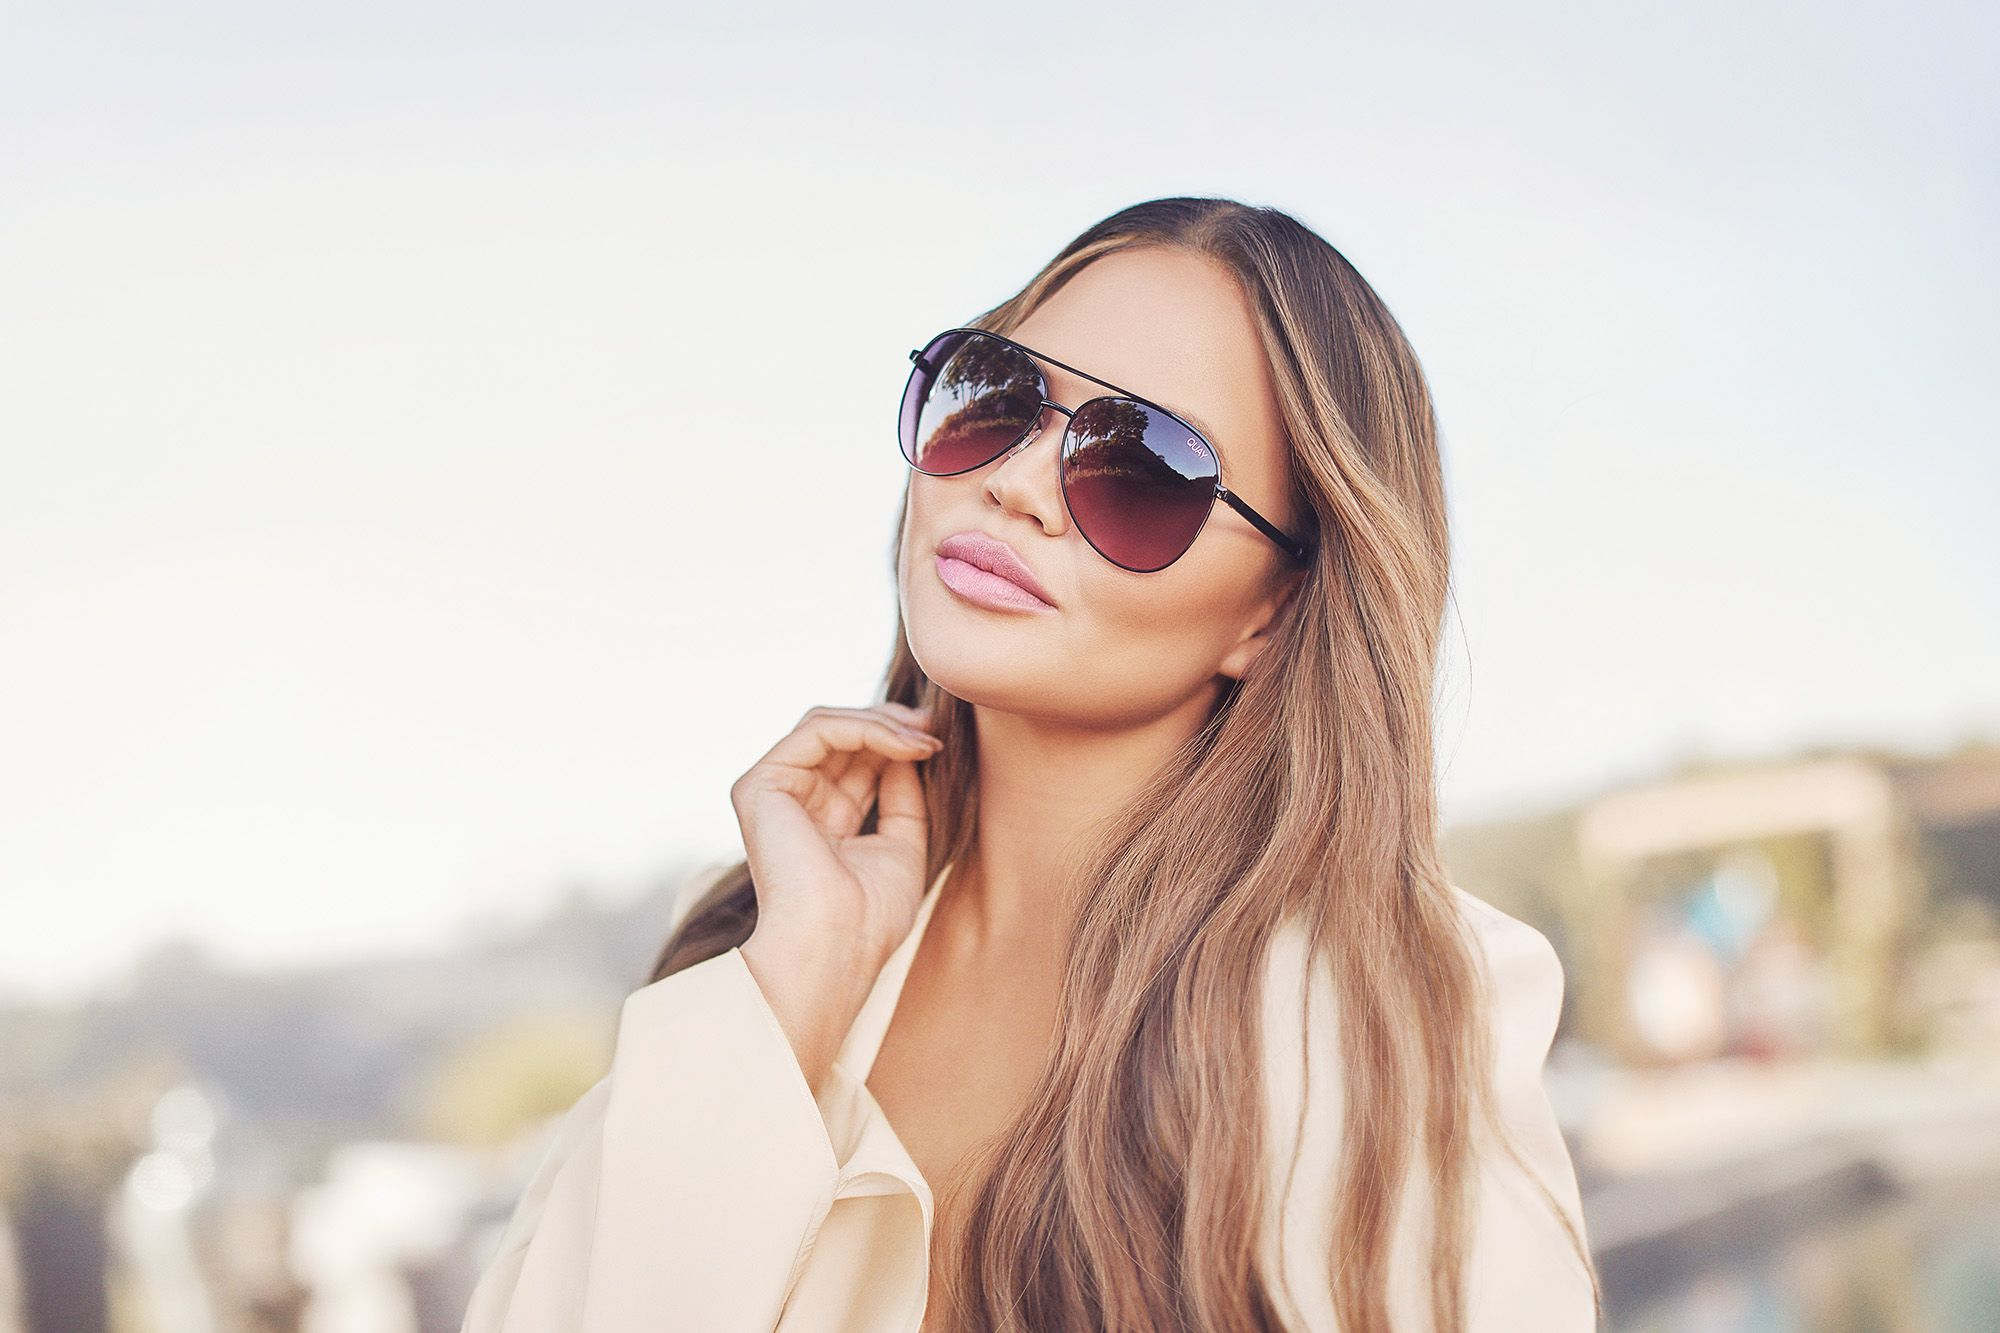 Chrissy Teigen x Quay Launch Sunglasses With Blue-Light Filtering Lenses